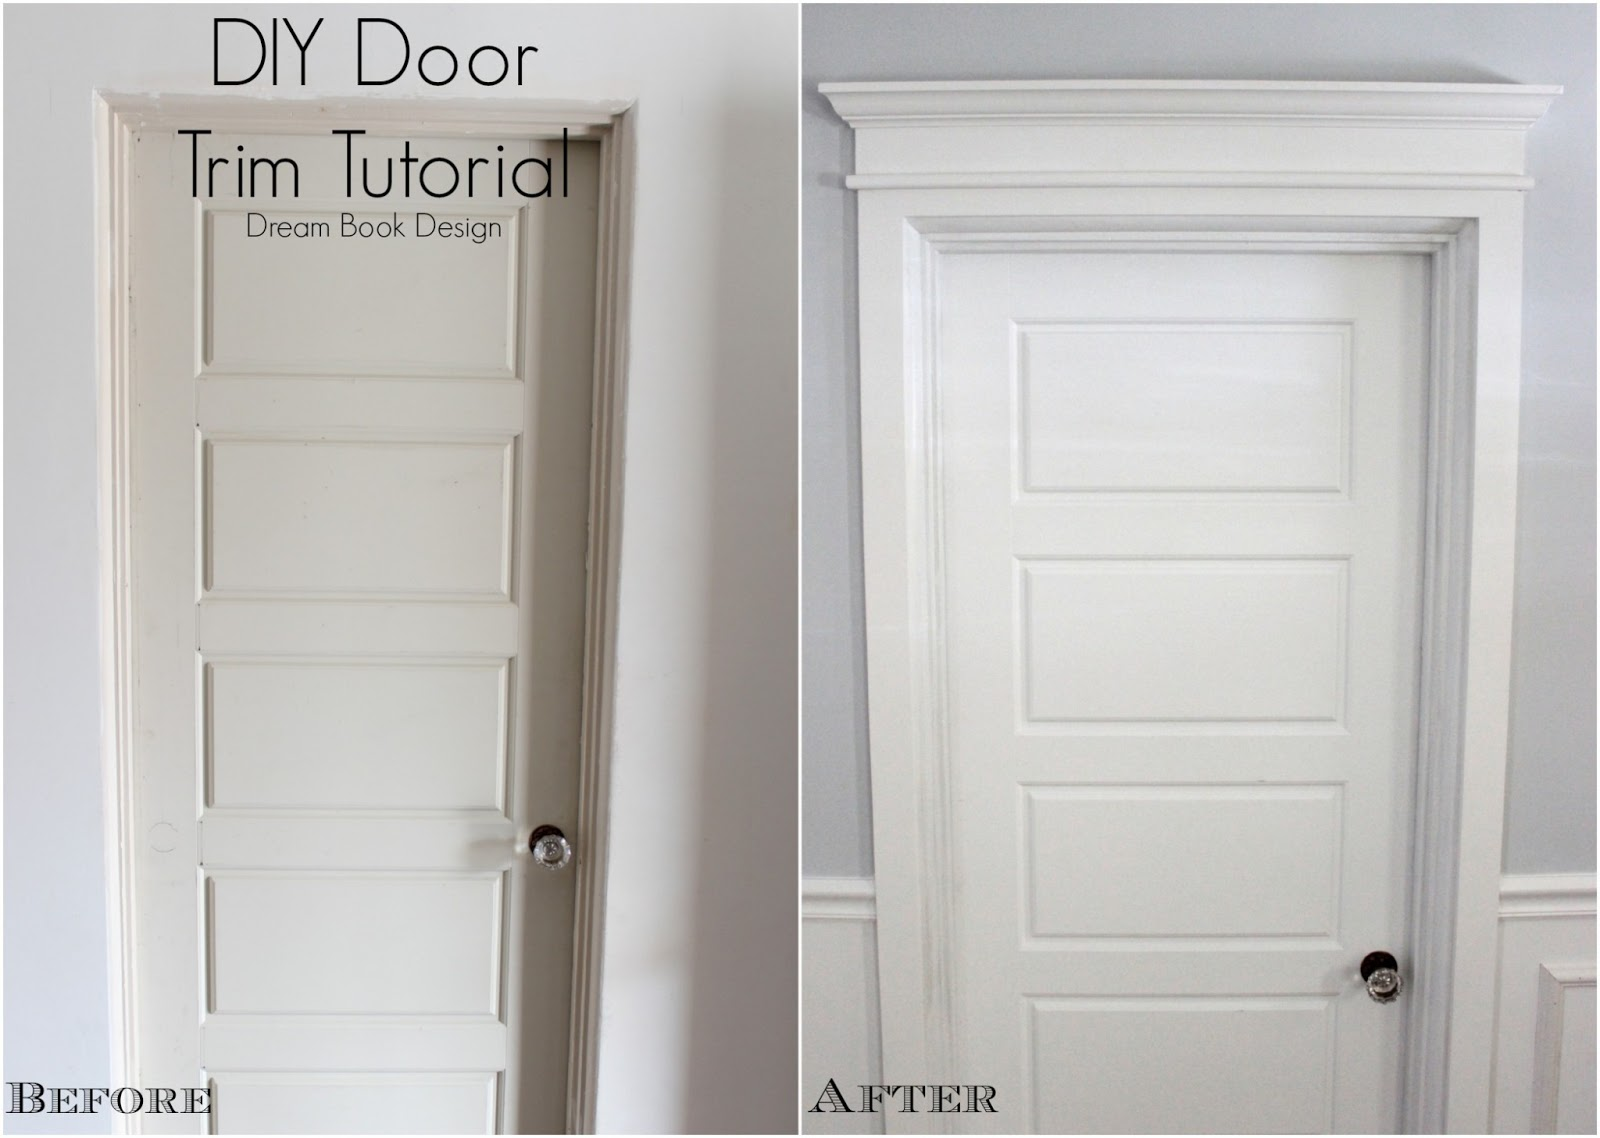 diy door trim tutorial dream book design